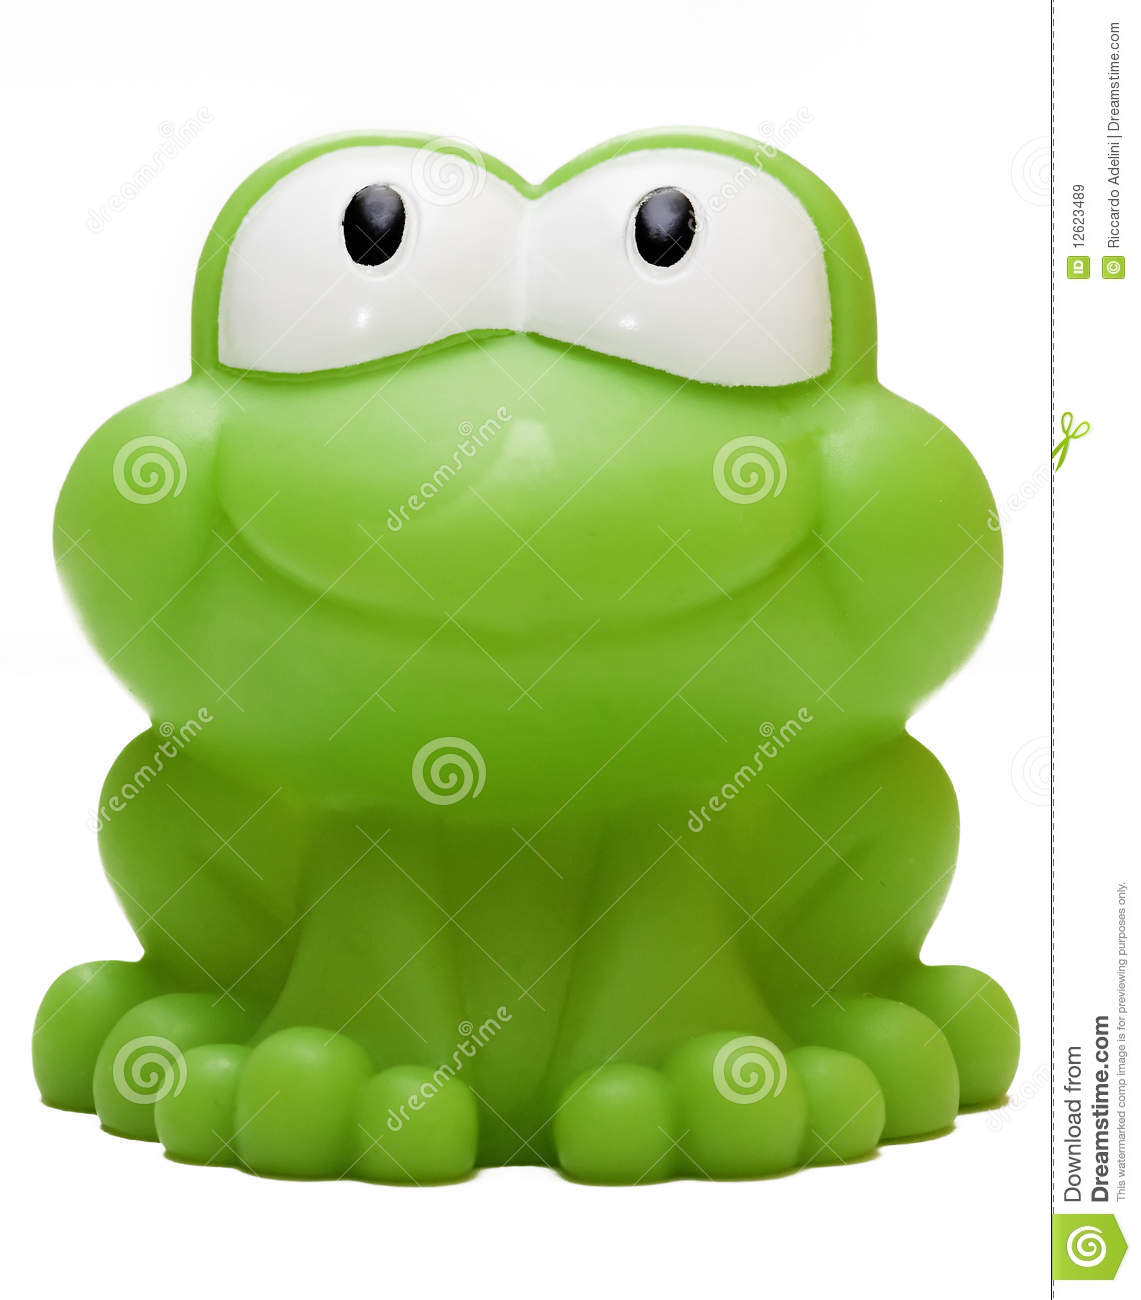 Toy Rubber Frog Isolated On White Background Royalty Free